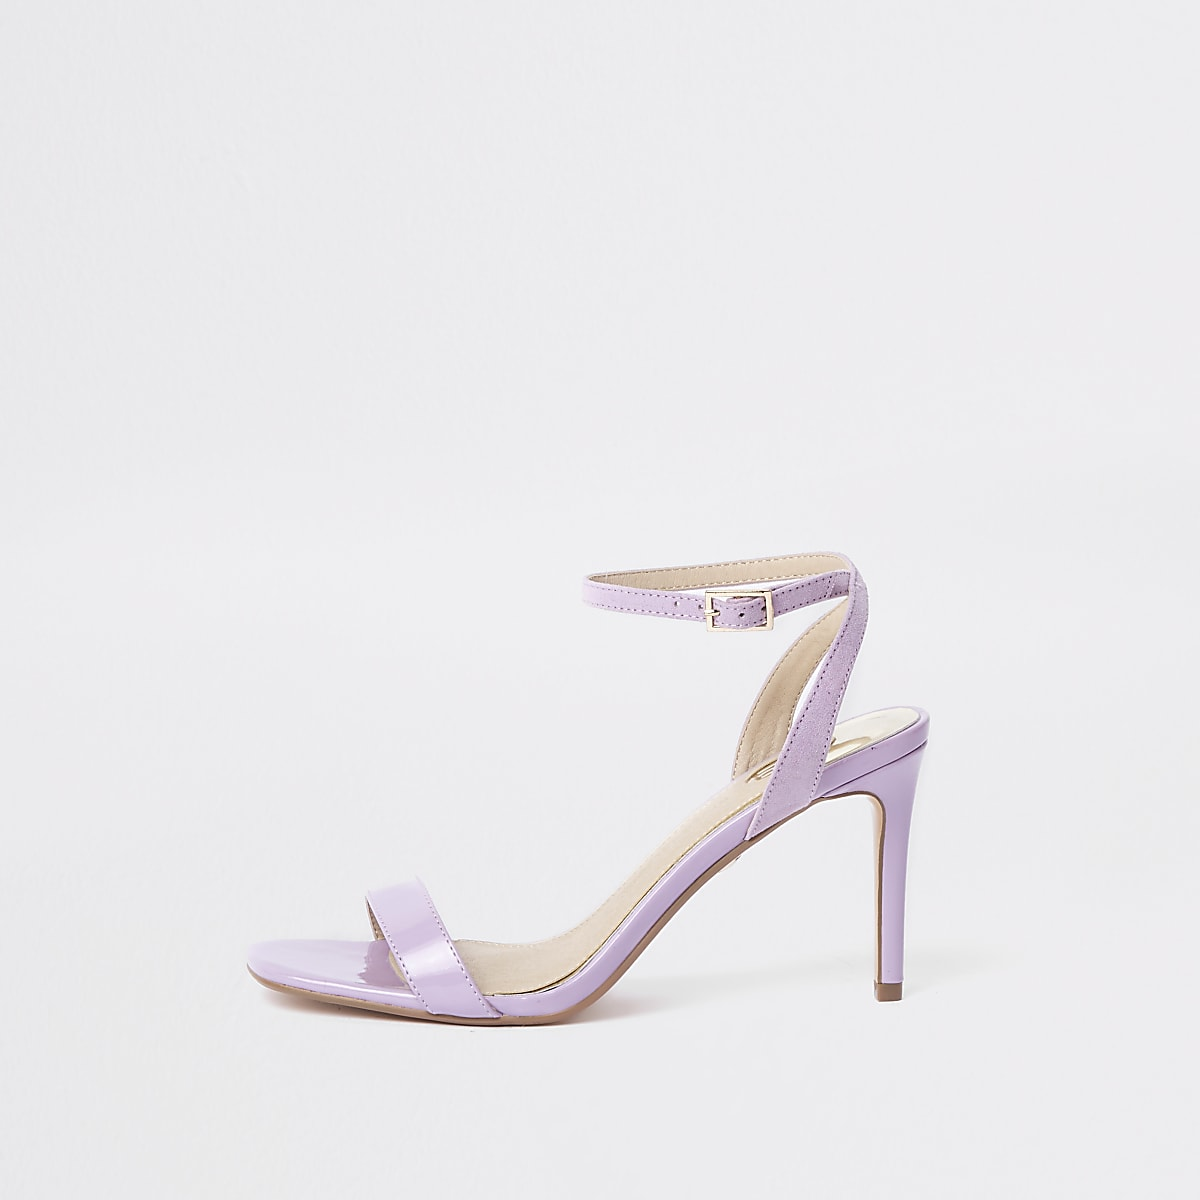 Purple barely there mid heel sandals